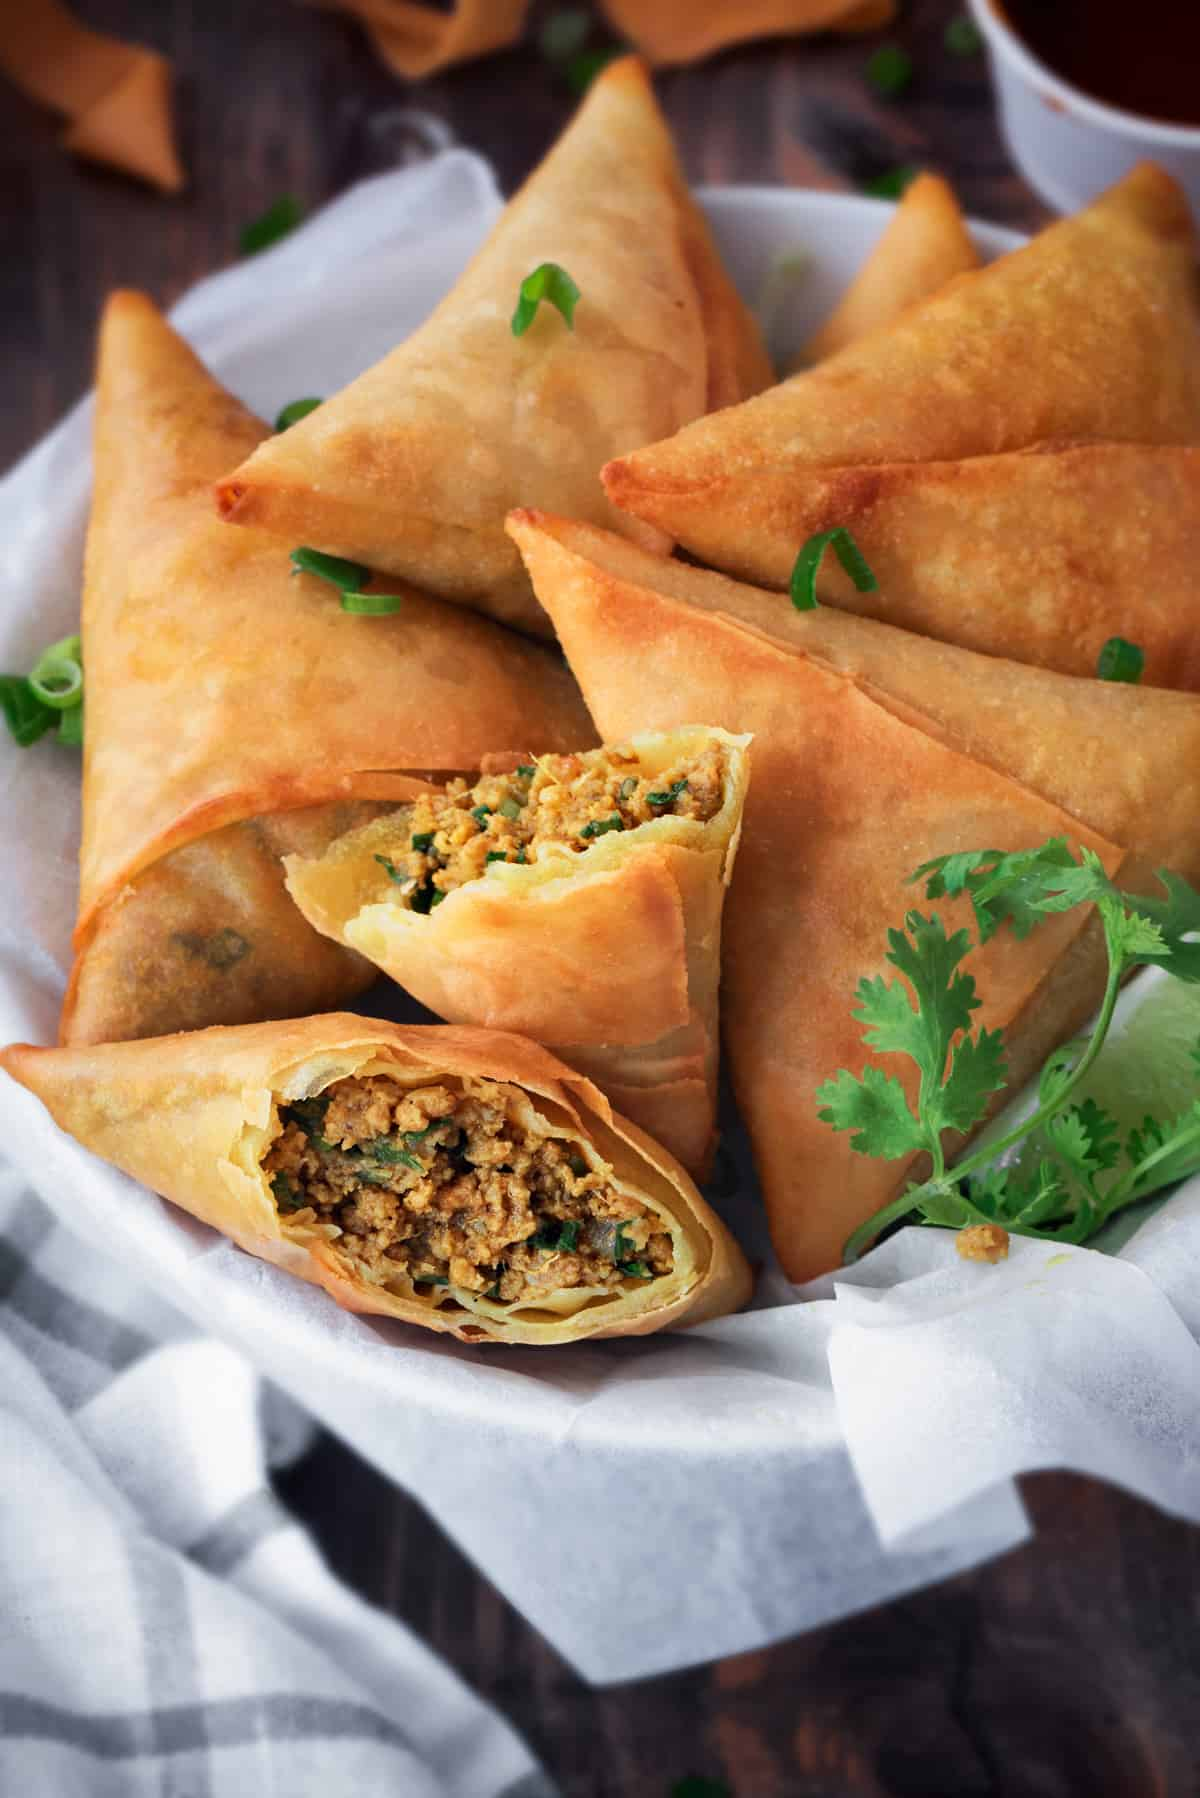 Crisp Mutton Keema Samosa served in basket, one samosa cut open to show the within.